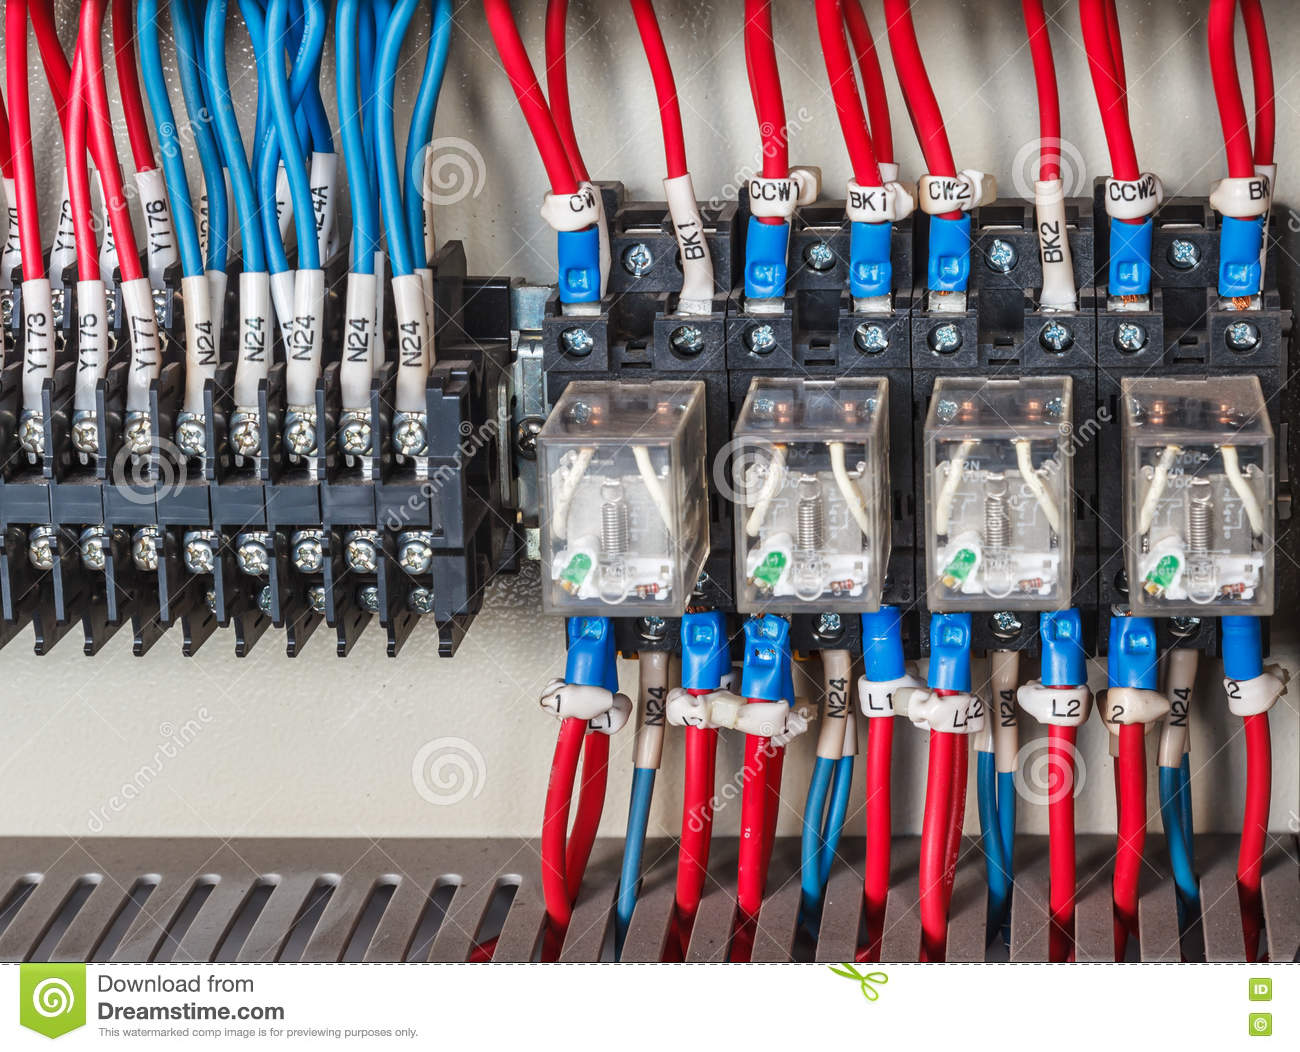 Strange Wiring Plc Stock Photo Image Of Electric Amps Electrician 71996202 Wiring Digital Resources Antuskbiperorg